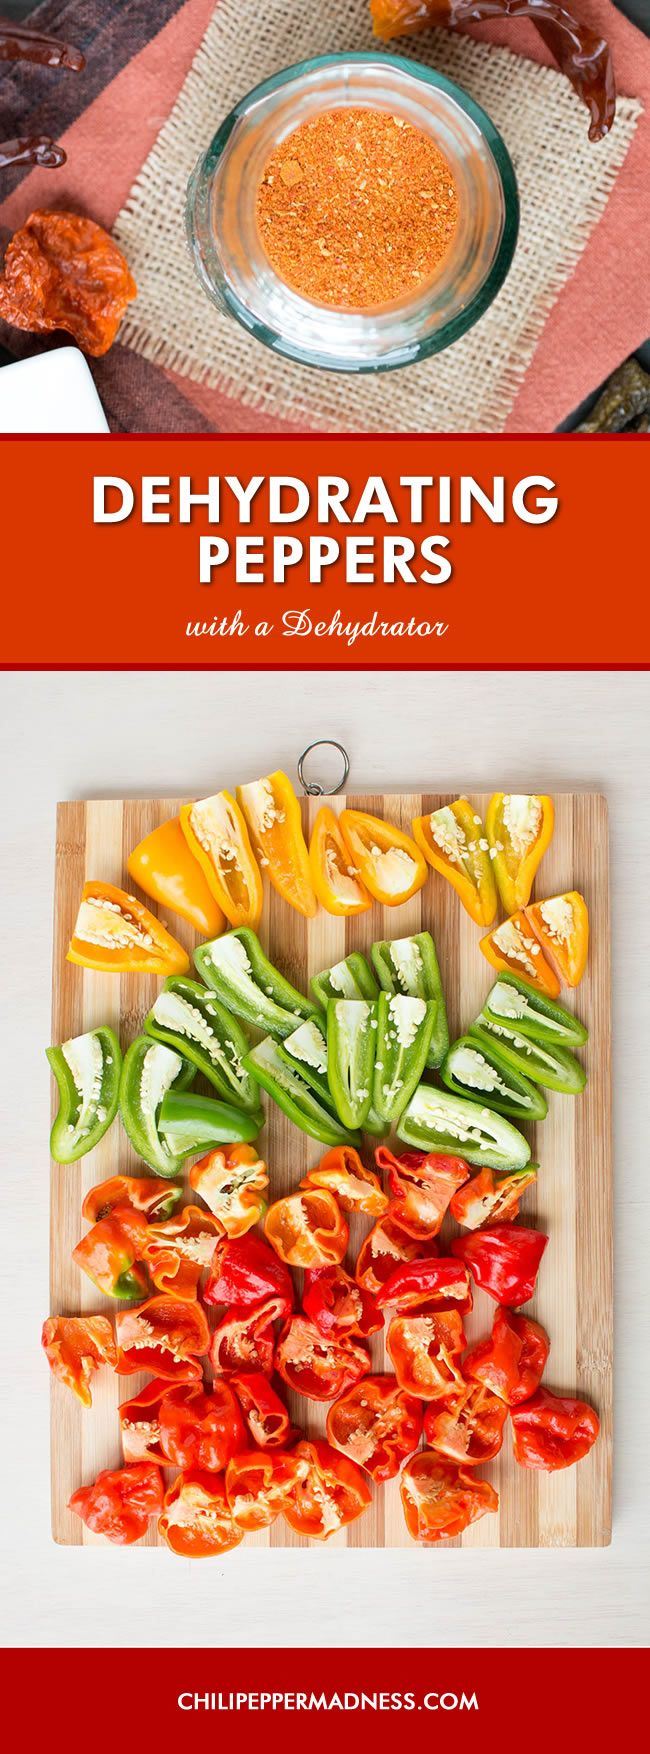 Dehydrating Chili Peppers with a Dehydrator - How To - Instructions for dehydrating chili peppers in a food dehydrator so you can preserve them for later use, make crushed red pepper, or grind them into powders for your own special seasoning blends.